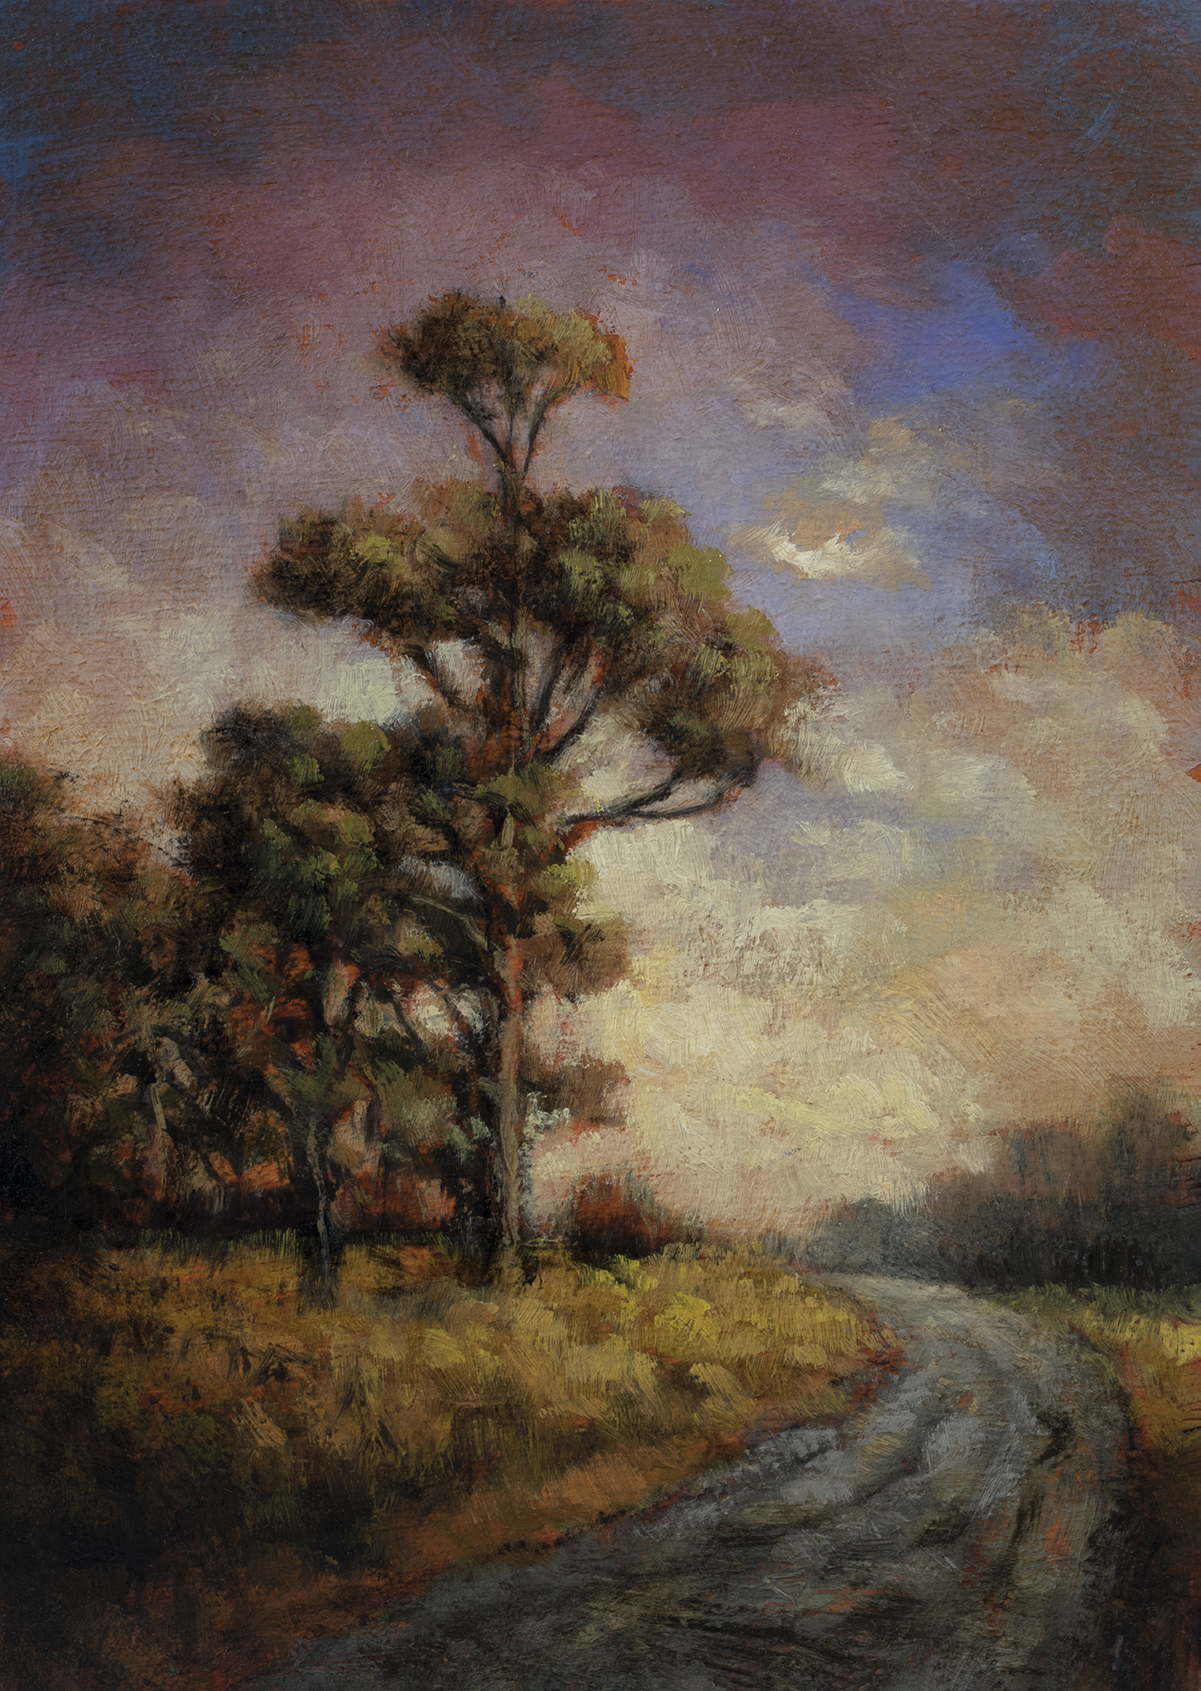 Into the Gloaming by M Francis McCarthy - 5x7 Oil on Wood Panel